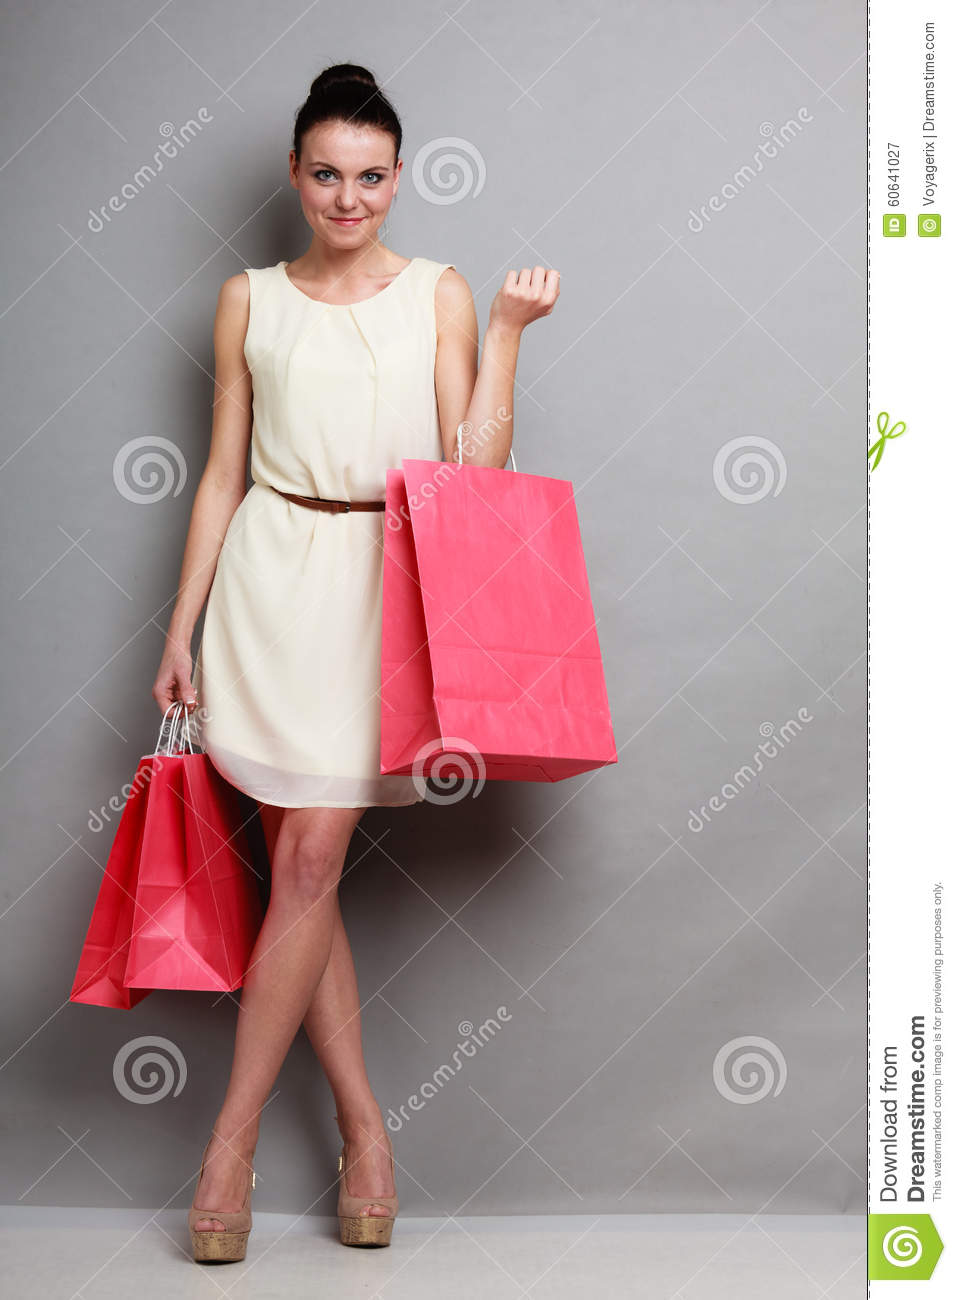 Wonderful Shopper Woman Holding Shopping Bags Stock Photo - Image 26351142